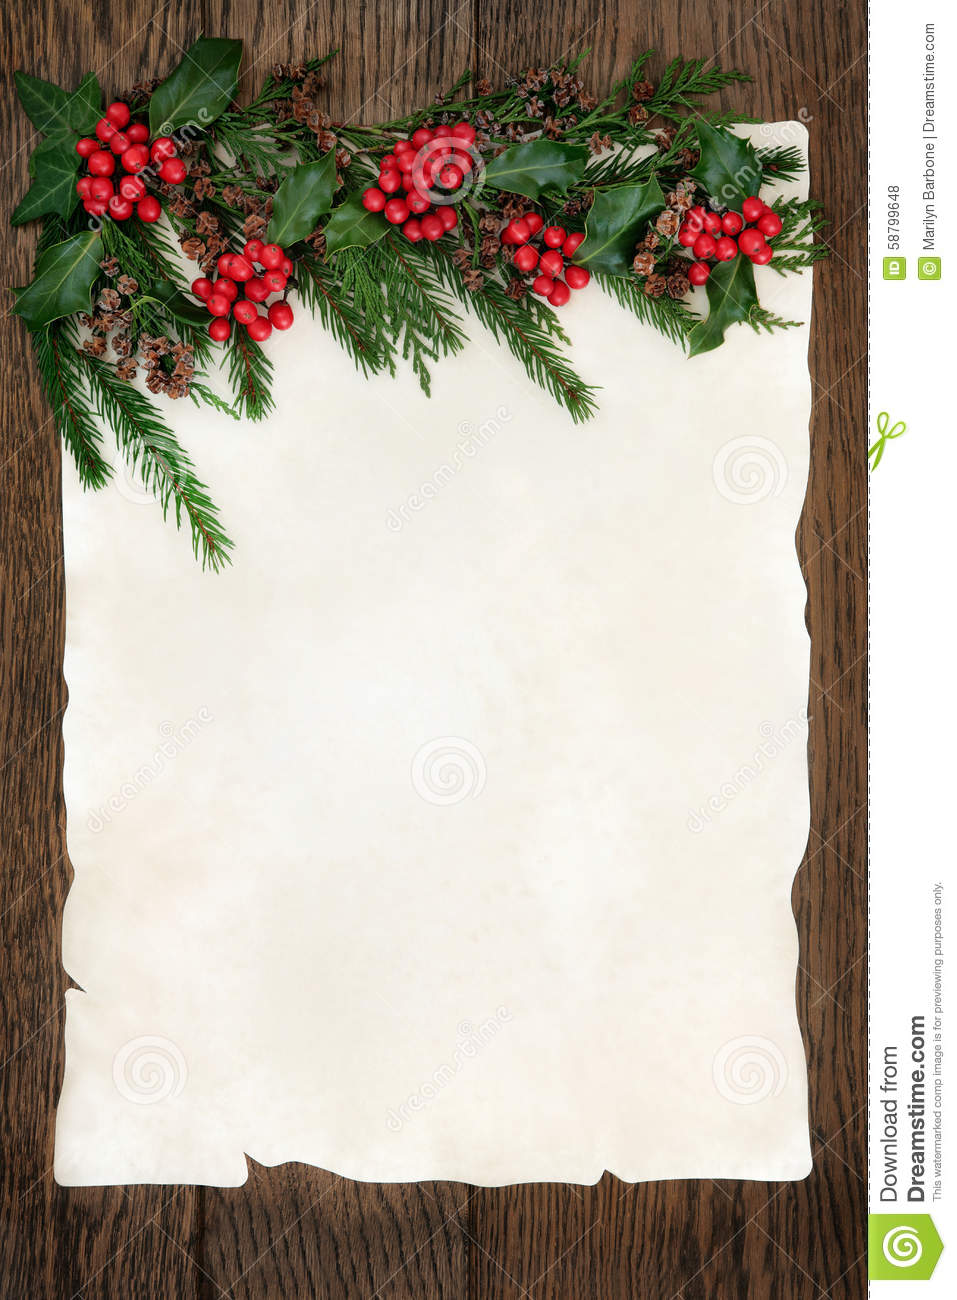 holly and fir border stock photo